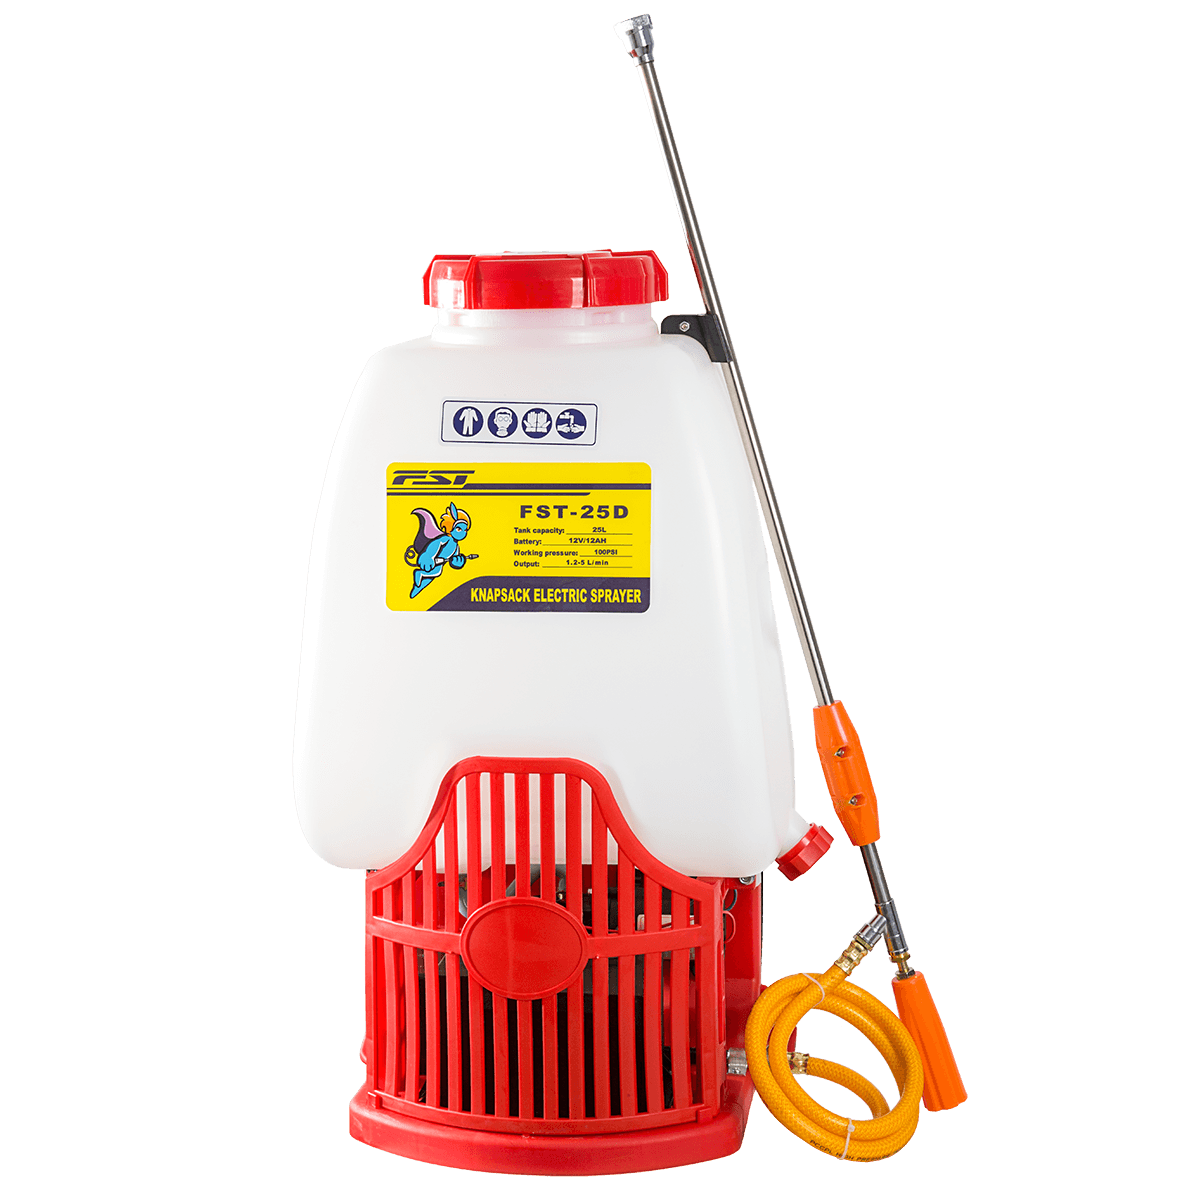 FST-20/25D Knapsack Electric Sprayer